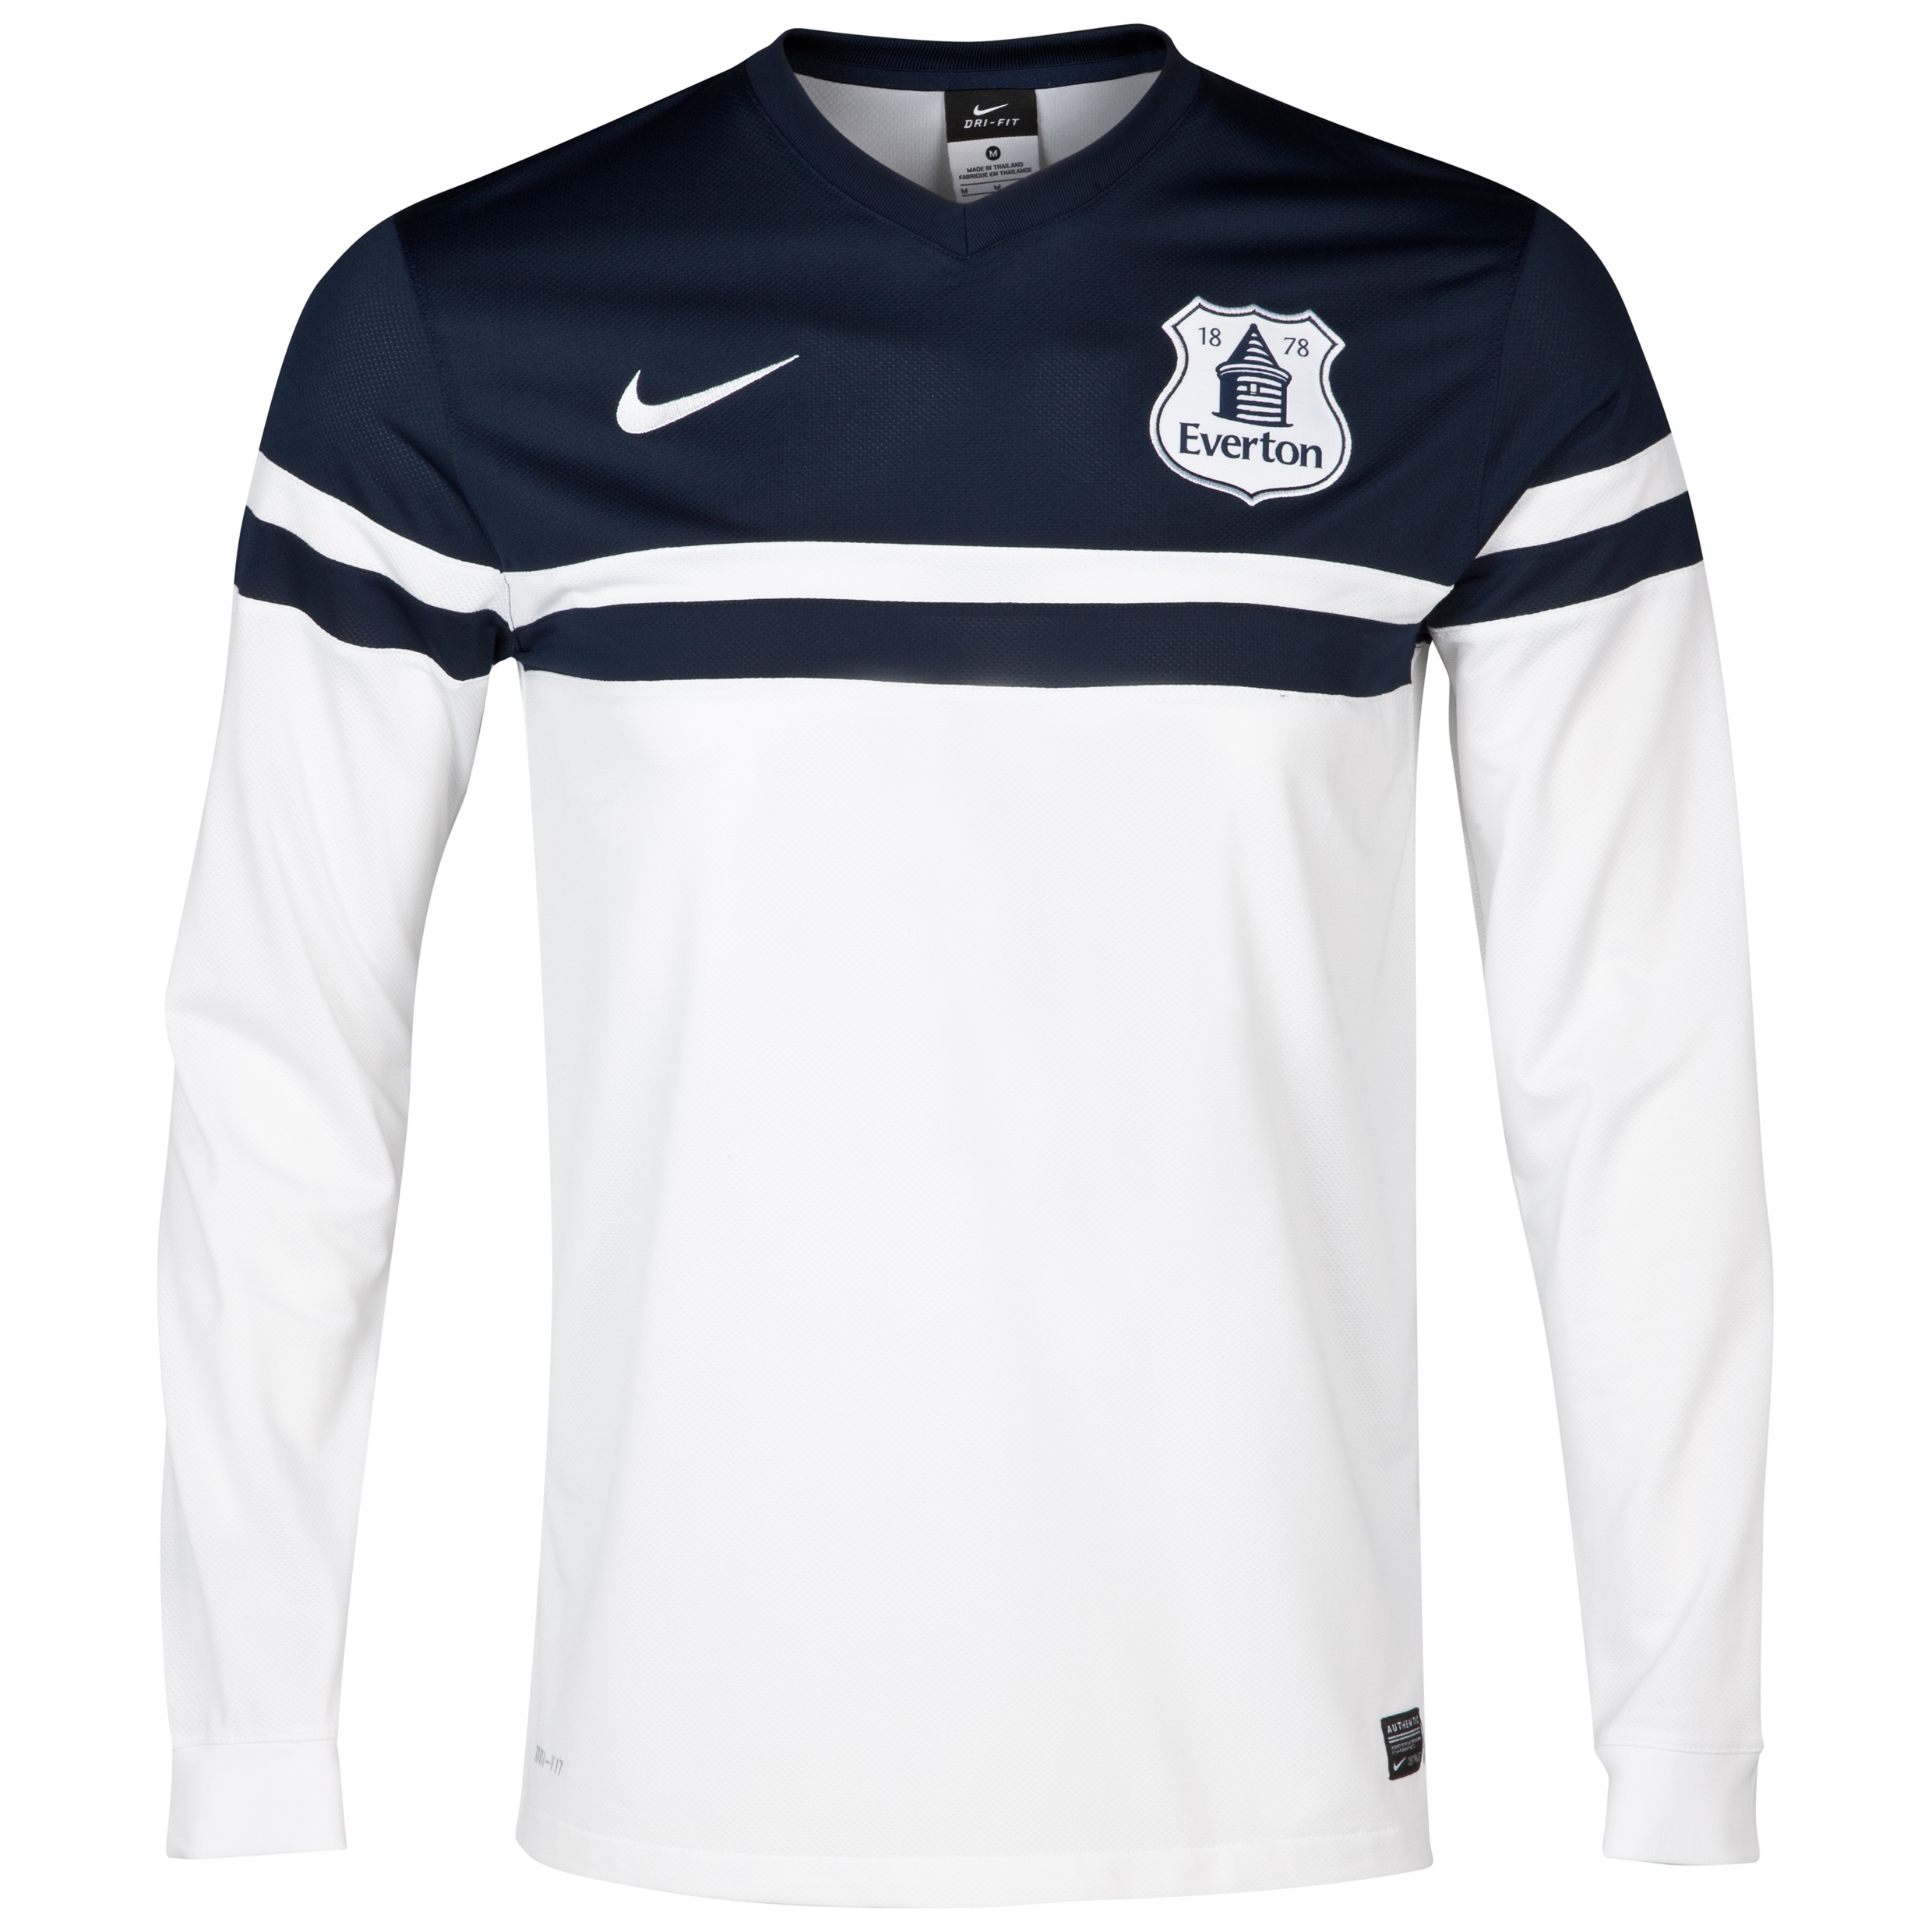 Everton 3rd Shirt 2013/14 - Junior - Long Sleeved White